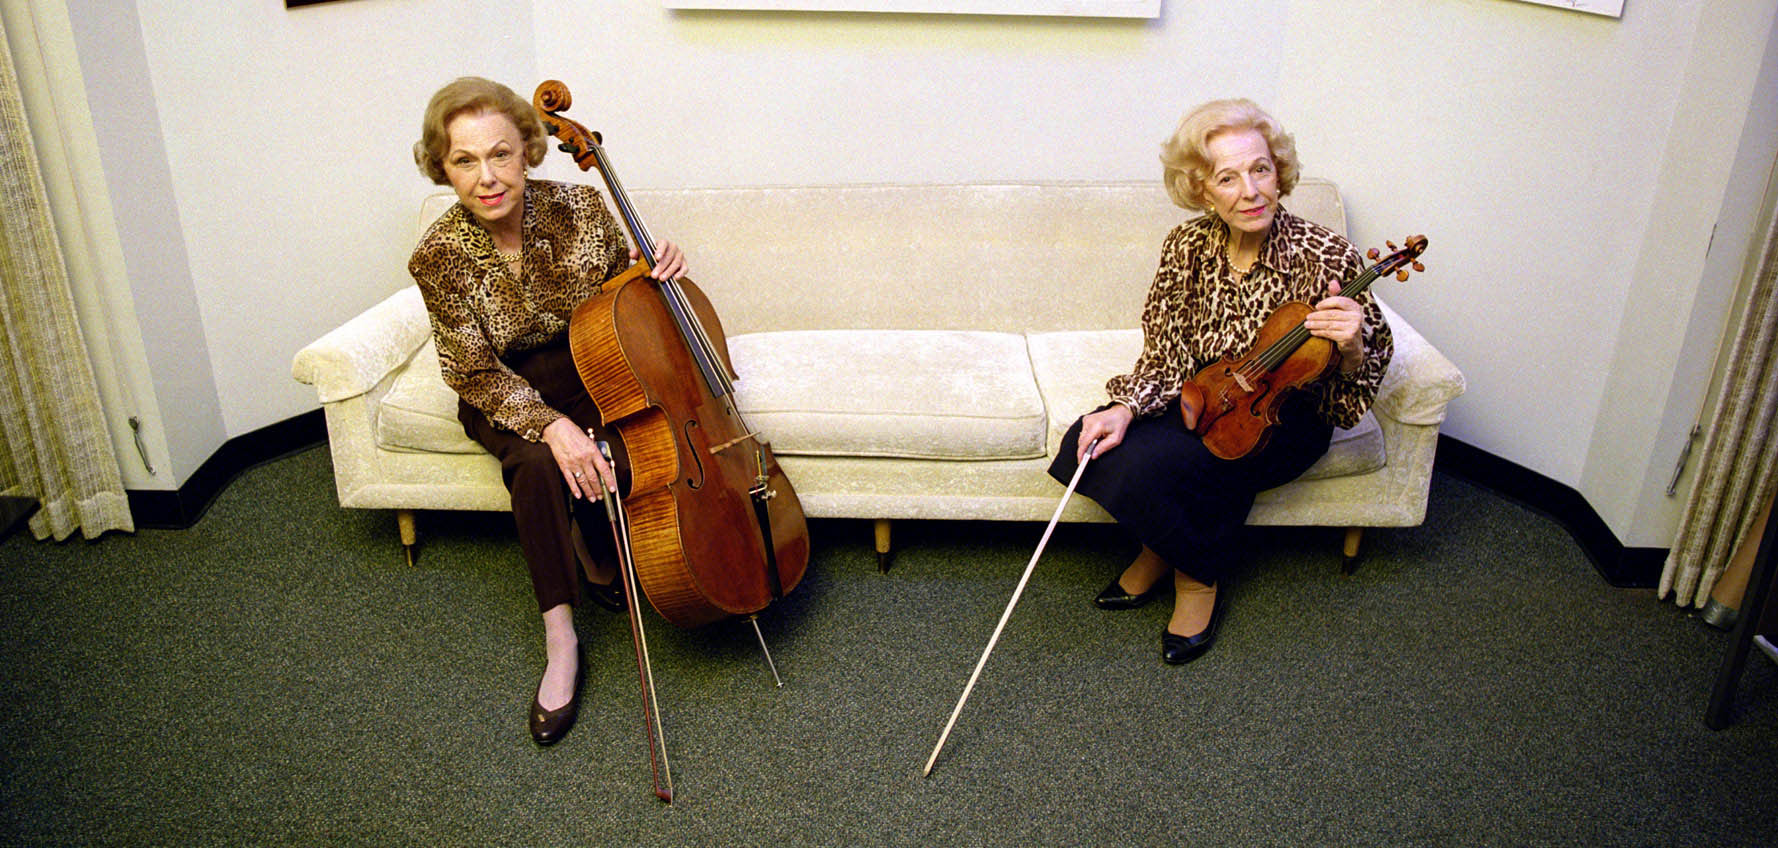 Alice Schoenfeld (right) and her sister, Eleonore Schoenfeld.